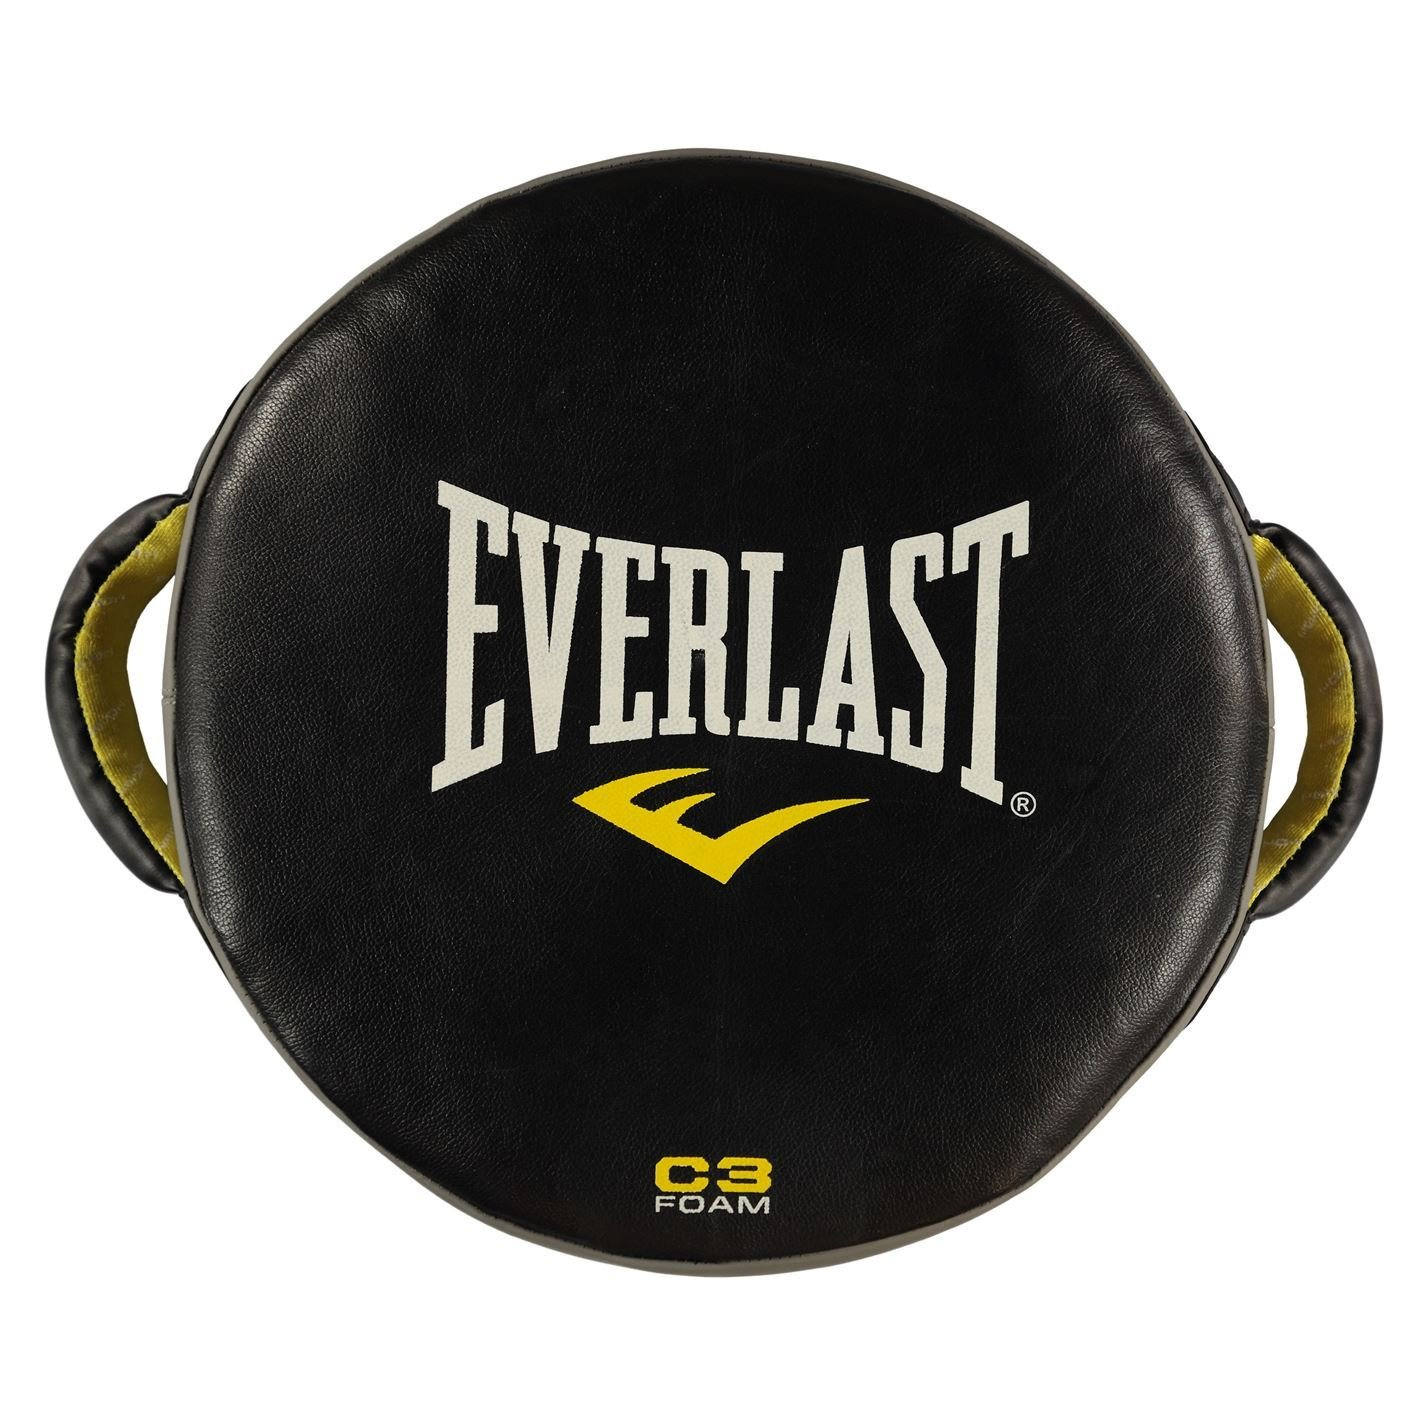 Everlast Punch Shield Lightweight Boxing Fight Training Equipment by Everlast